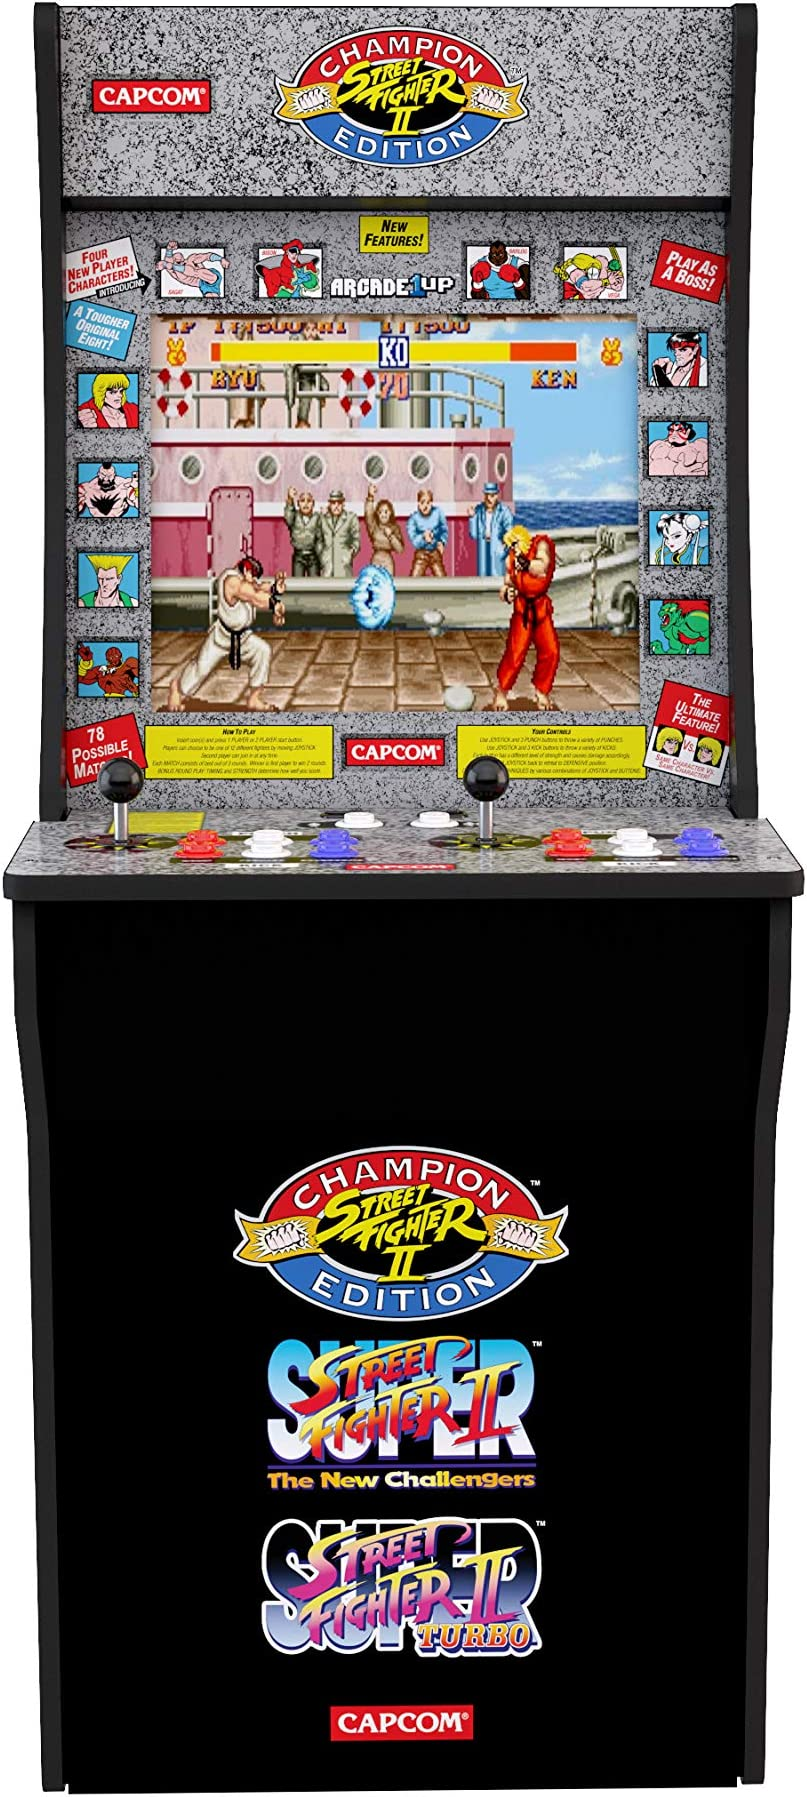 Amazon com: Arcade1Up Street Fighter - Classic 3-in-1 Home